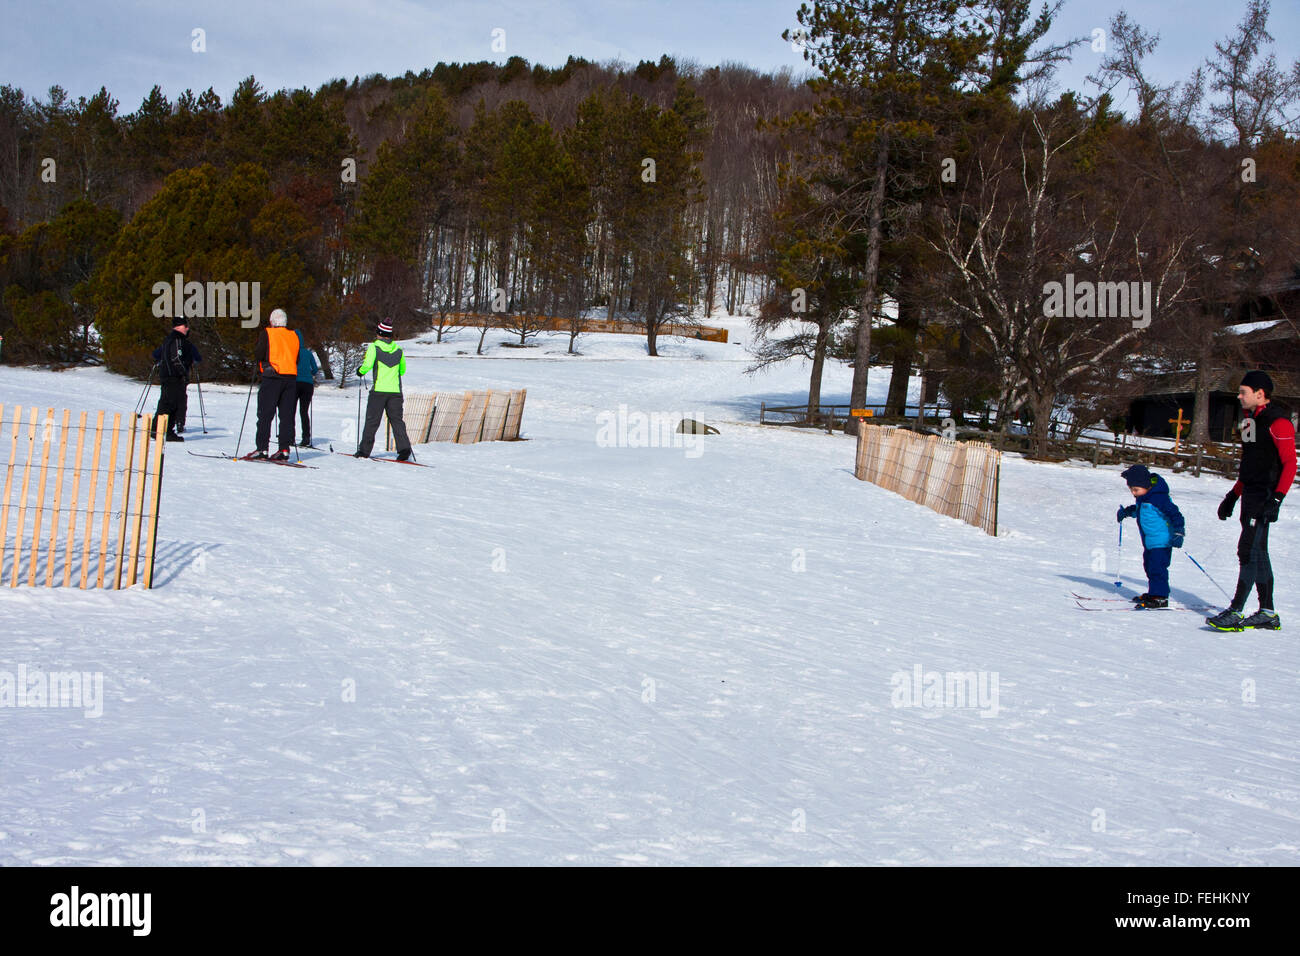 The Von Trapp Family Lodge in Stowe Vermont, USA,  cross country skiers  on groomed trails. - Stock Image